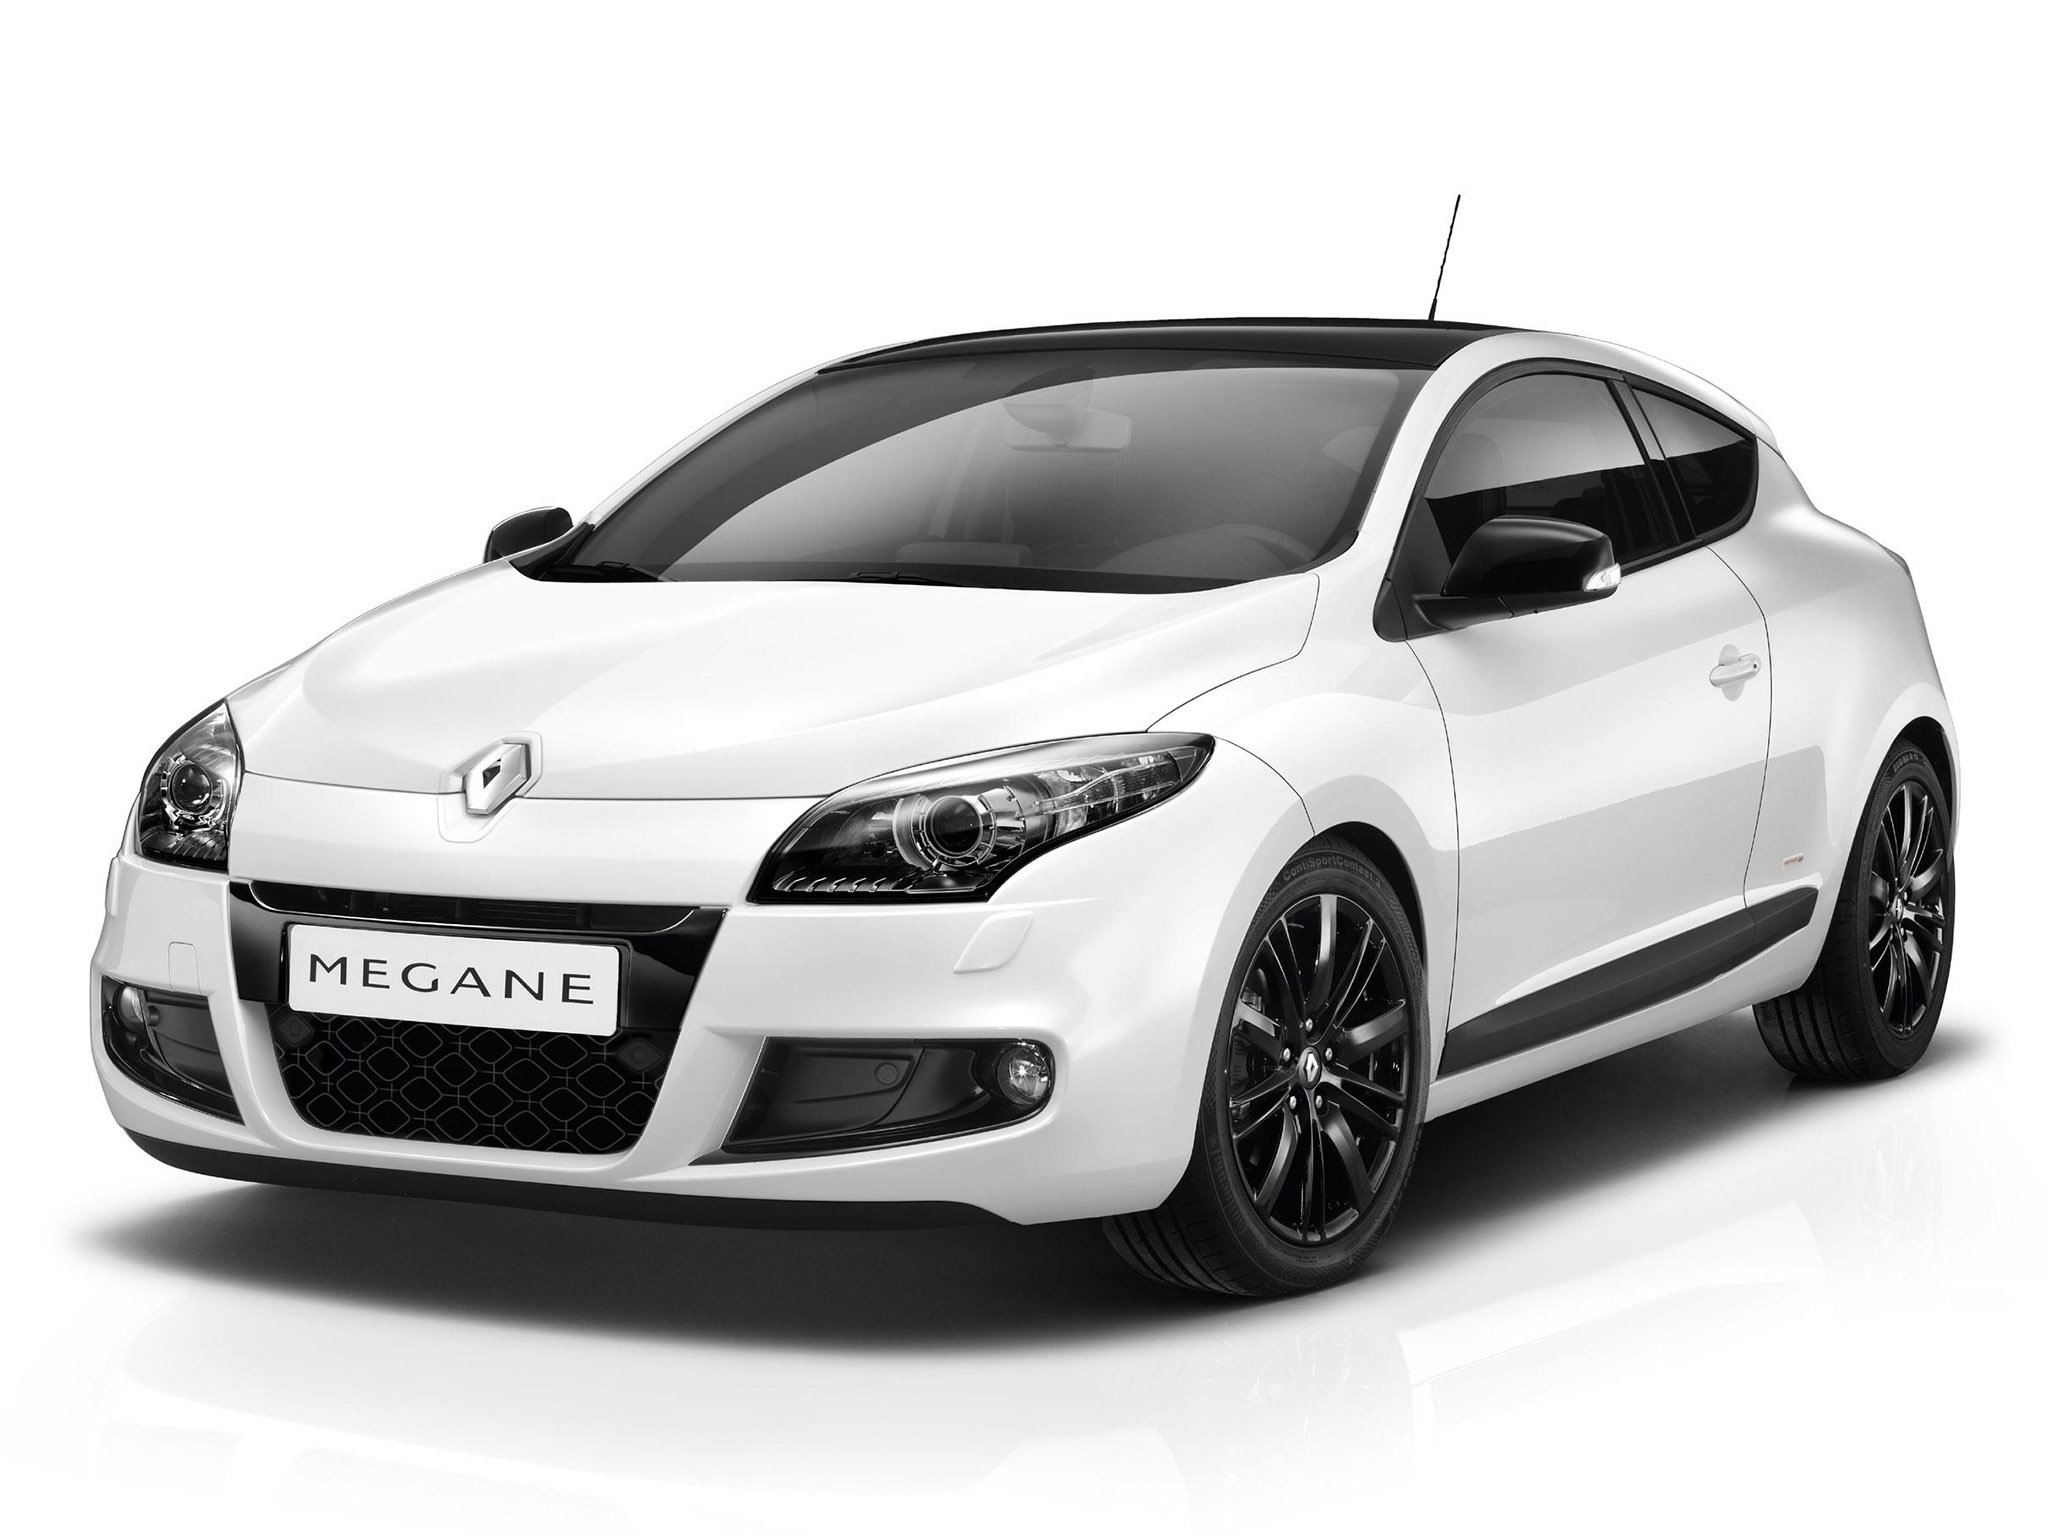 2011 renault megane iii coupe pictures information and. Black Bedroom Furniture Sets. Home Design Ideas